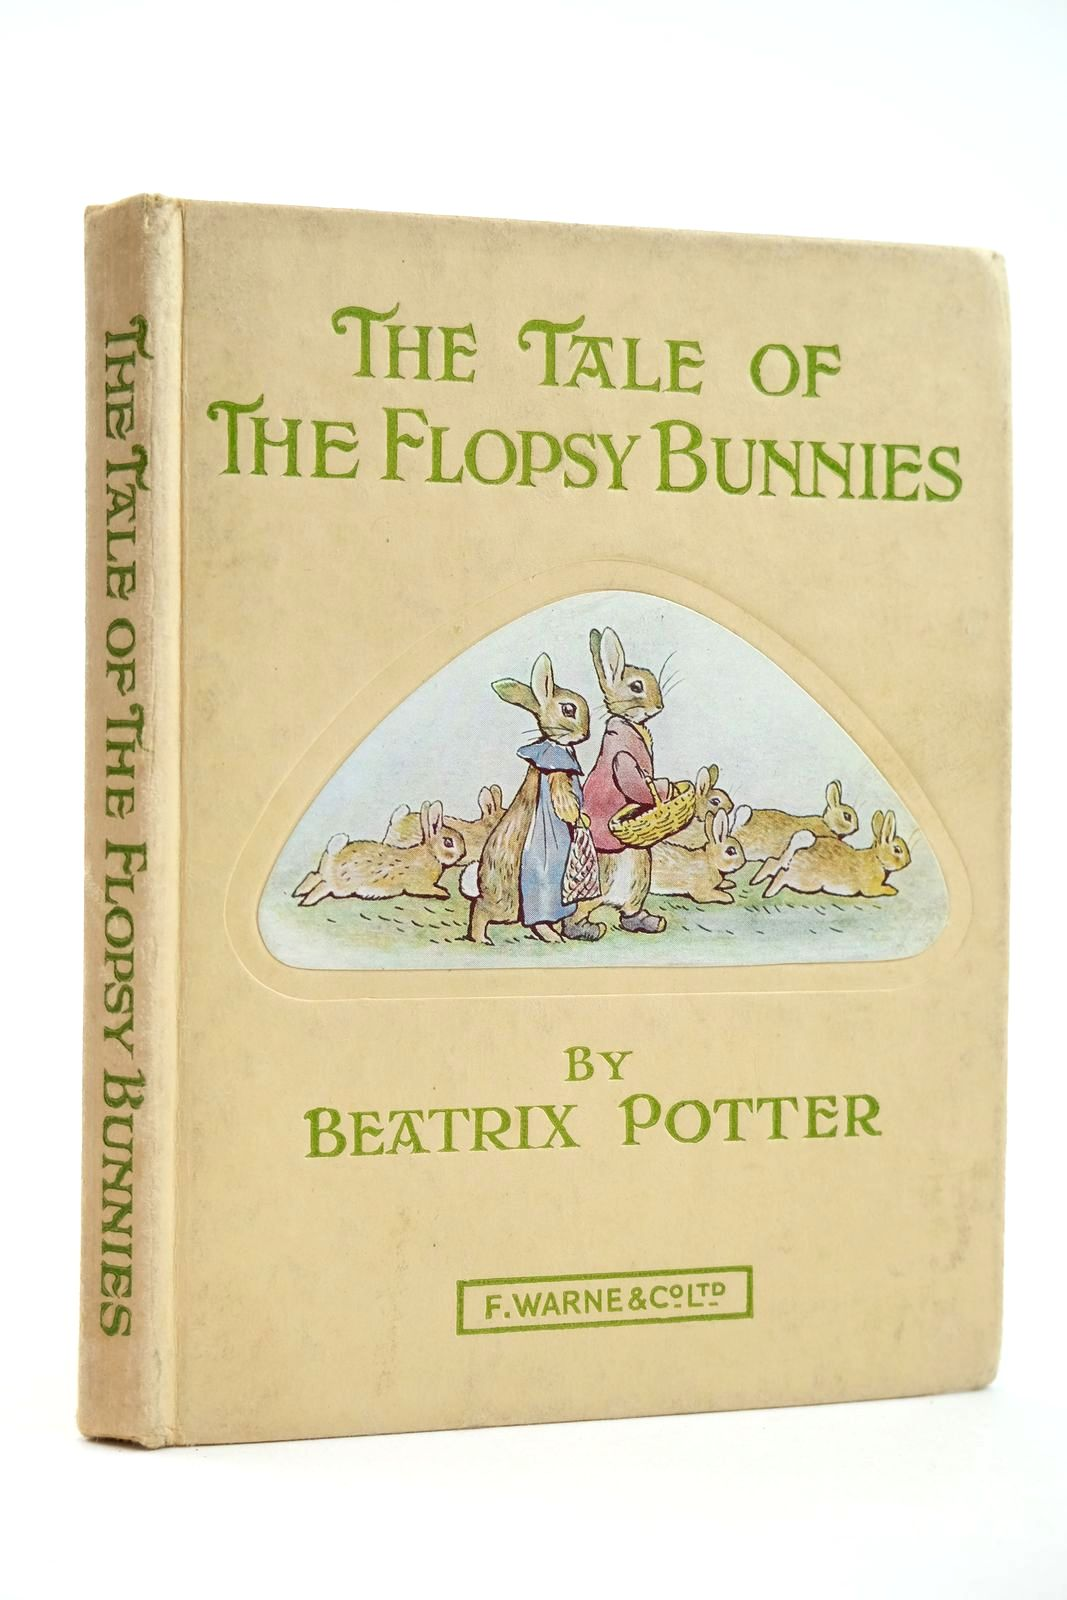 Photo of THE TALE OF THE FLOPSY BUNNIES- Stock Number: 2131892